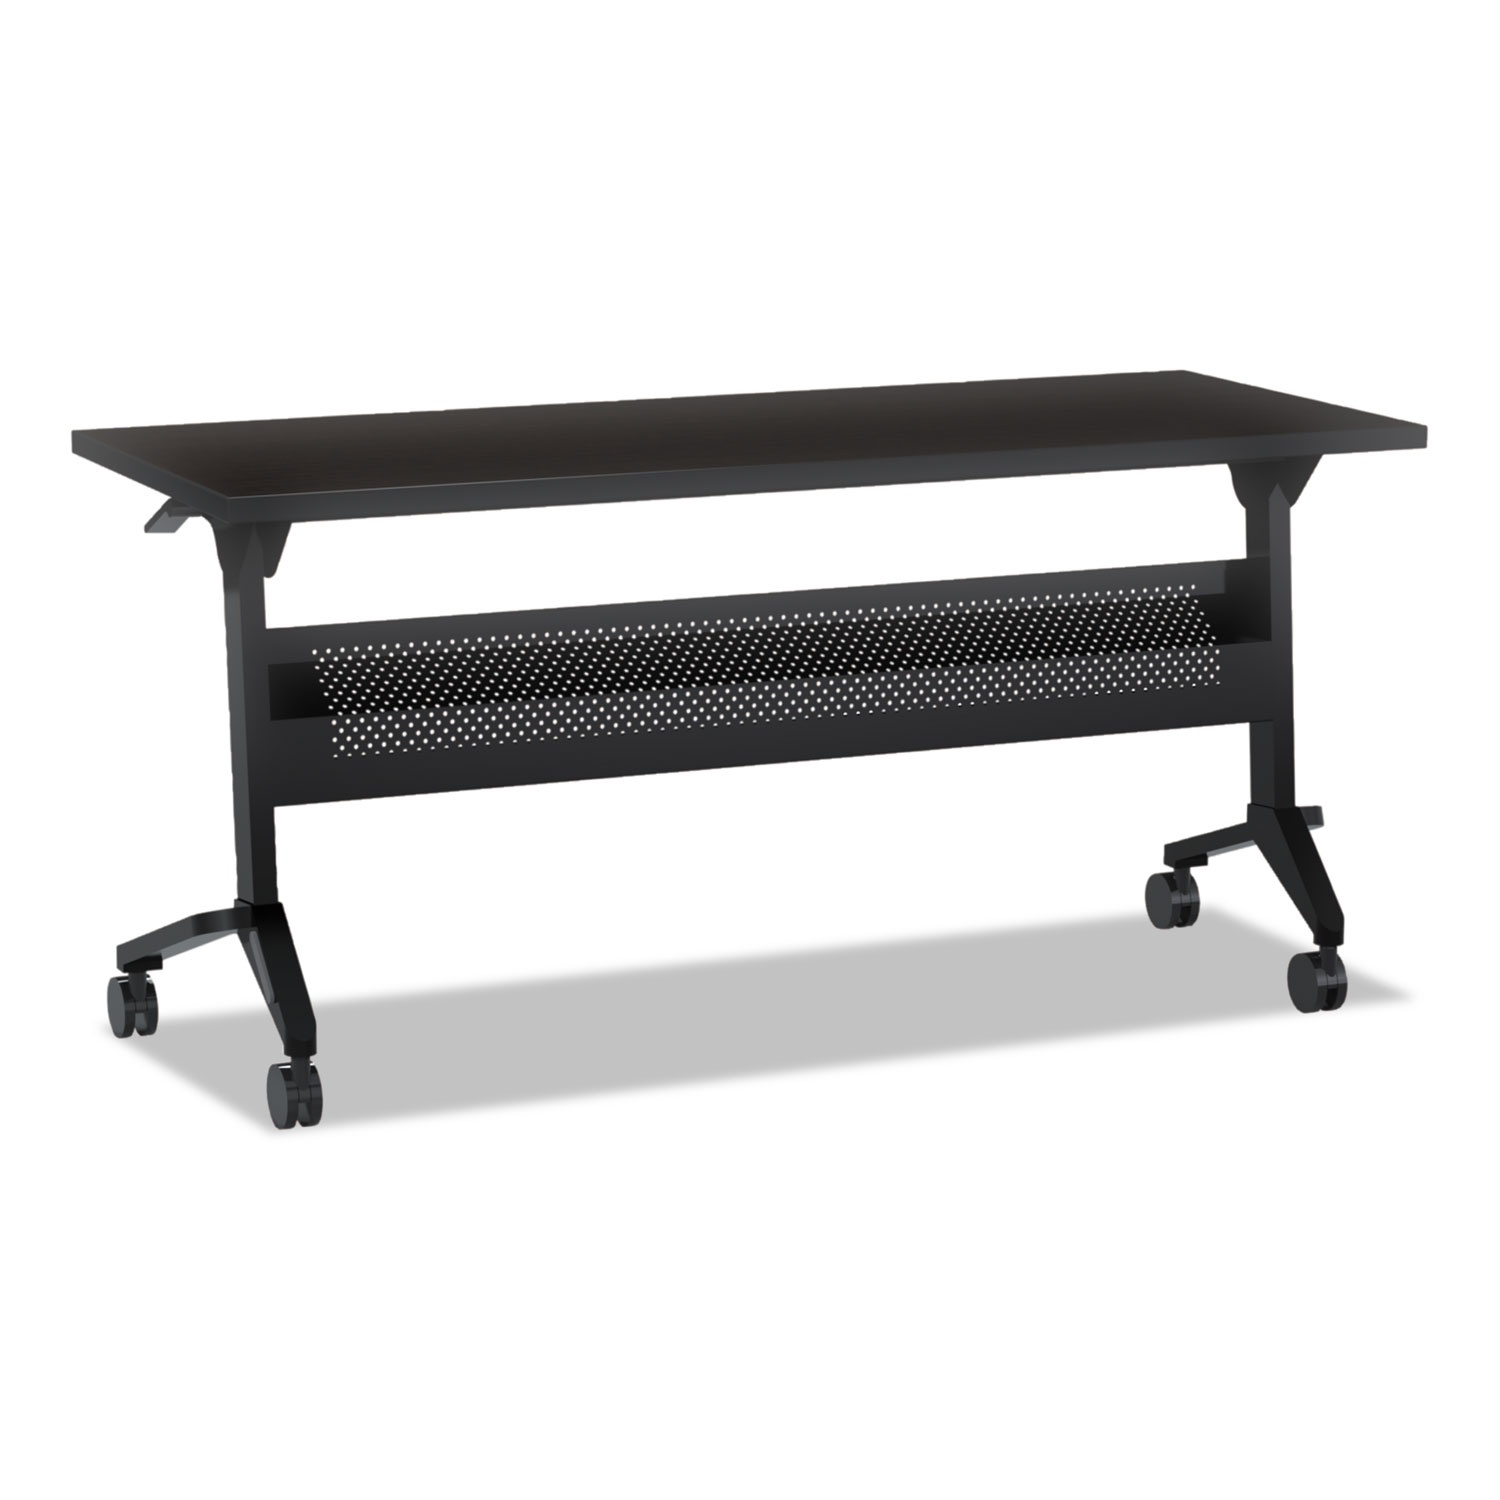 Flip-n-Go Table Top, 48w x 24d, Mocha